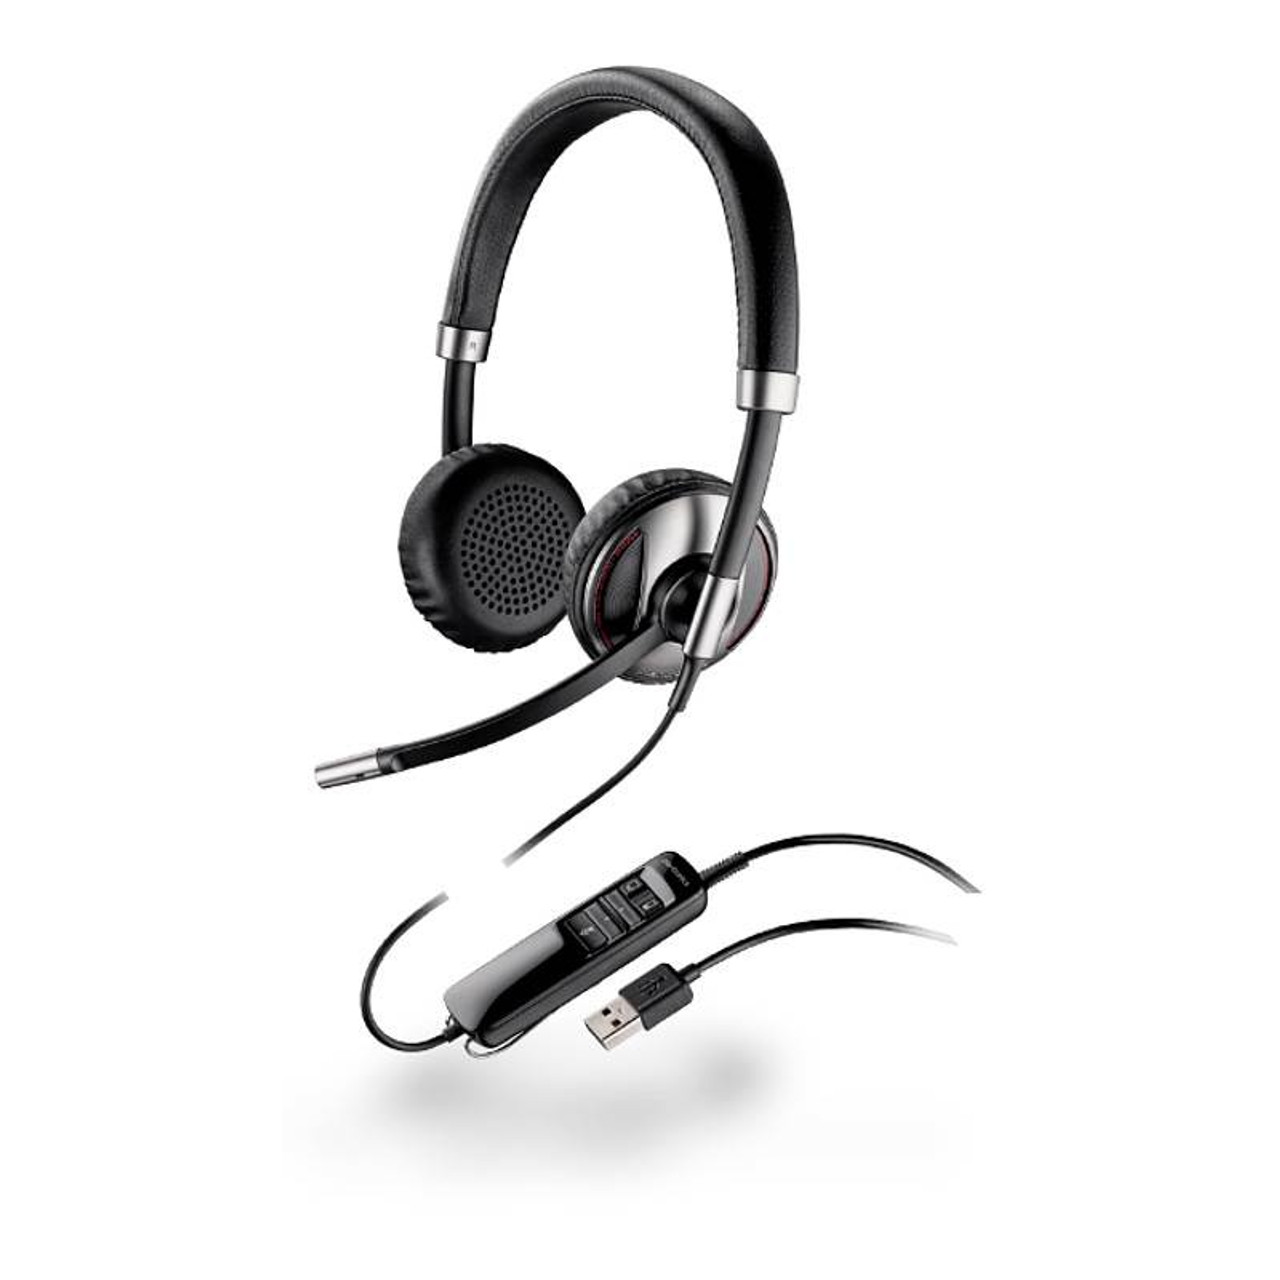 Image for Plantronics Blackwire C720 Binaural UC USB Bluetooth Headset CX Computer Superstore